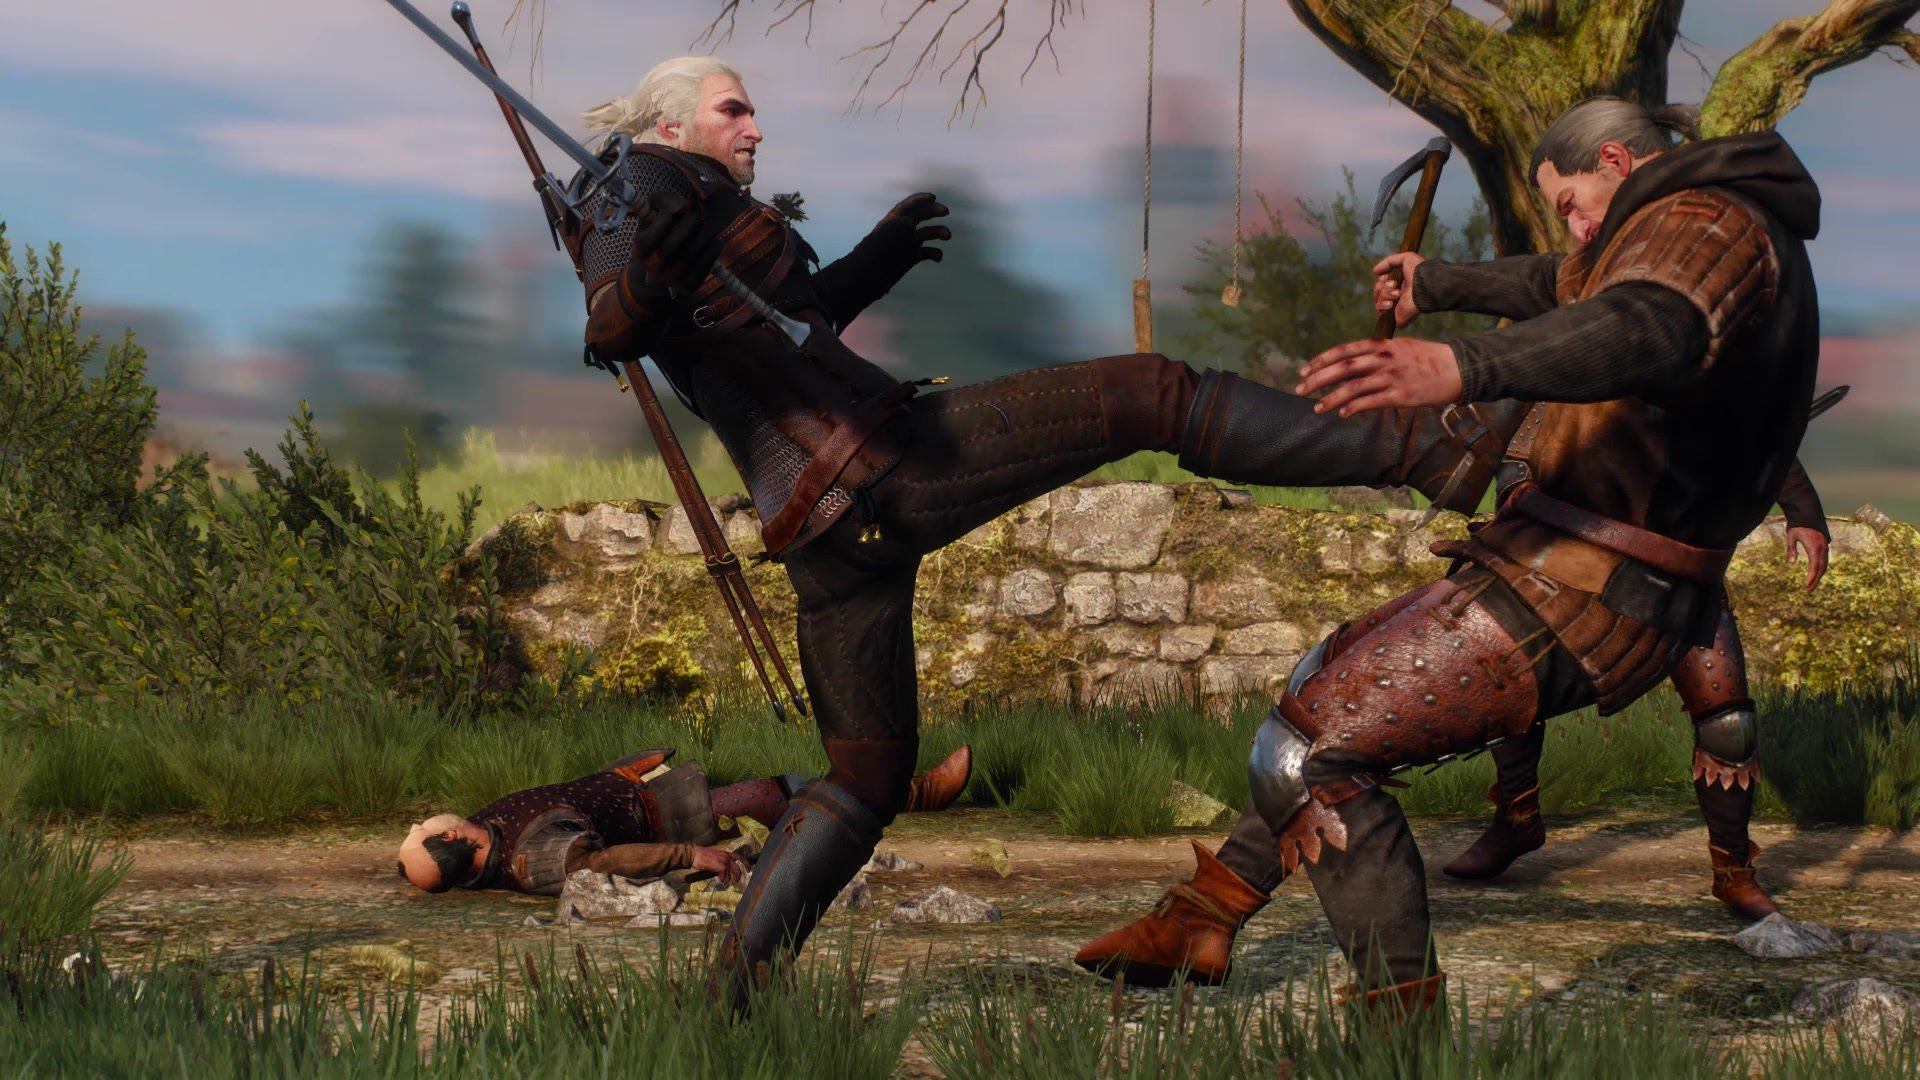 The Witcher 3: Wild Hunt. Превью от IGN.    Зарубежный портал IGN поиграл в нового Ведьмака и теперь рассказывает о  ... - Изображение 4